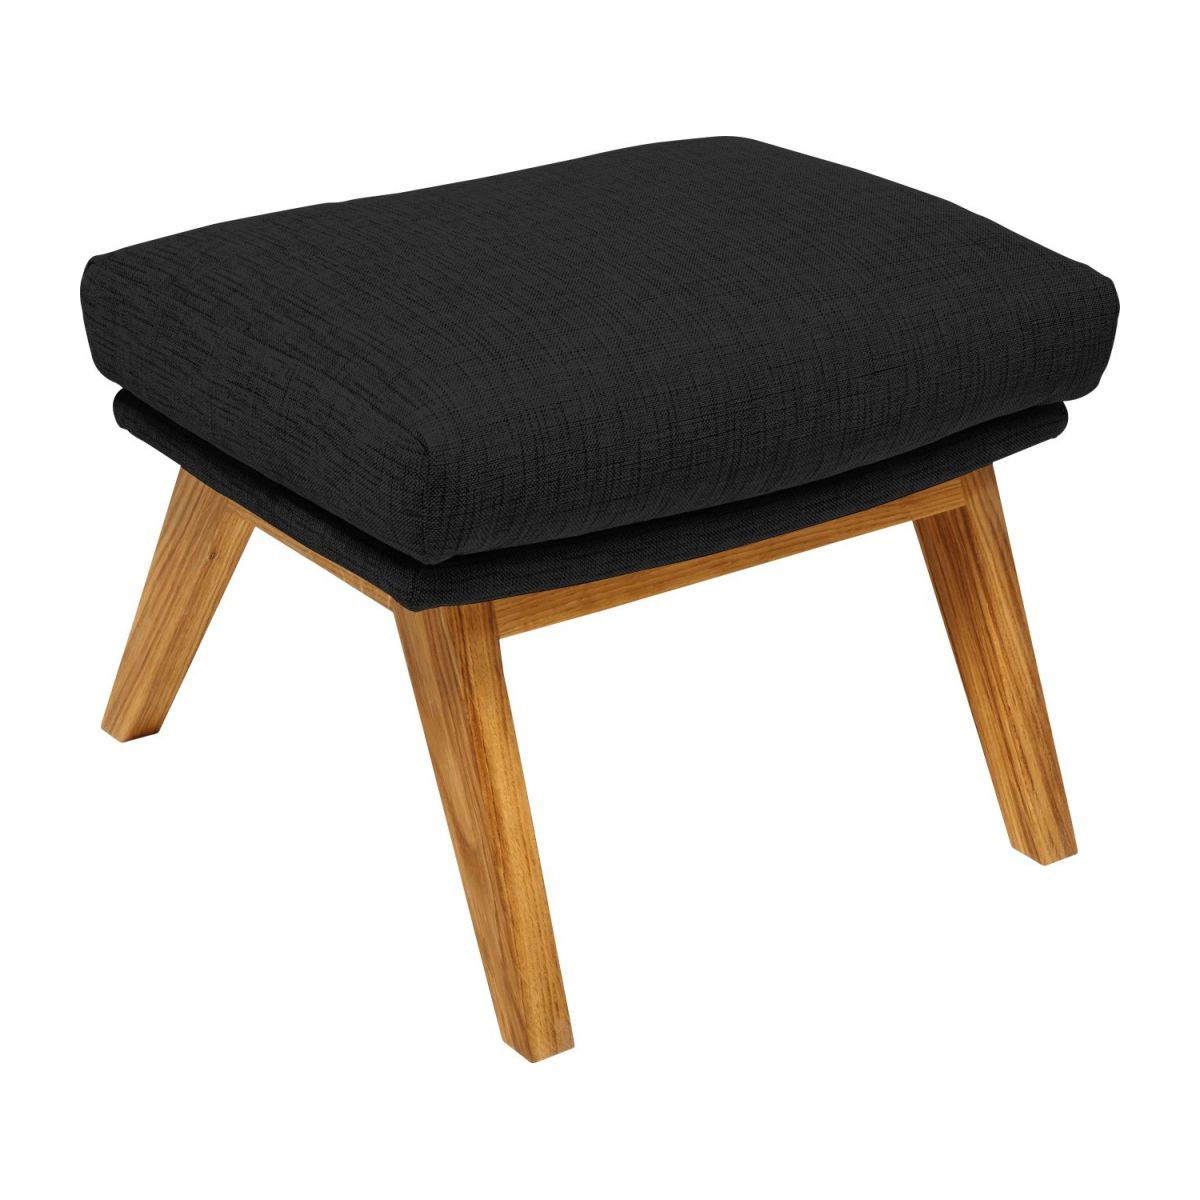 Footstool in Ancio fabric, nero with oak legs n°1